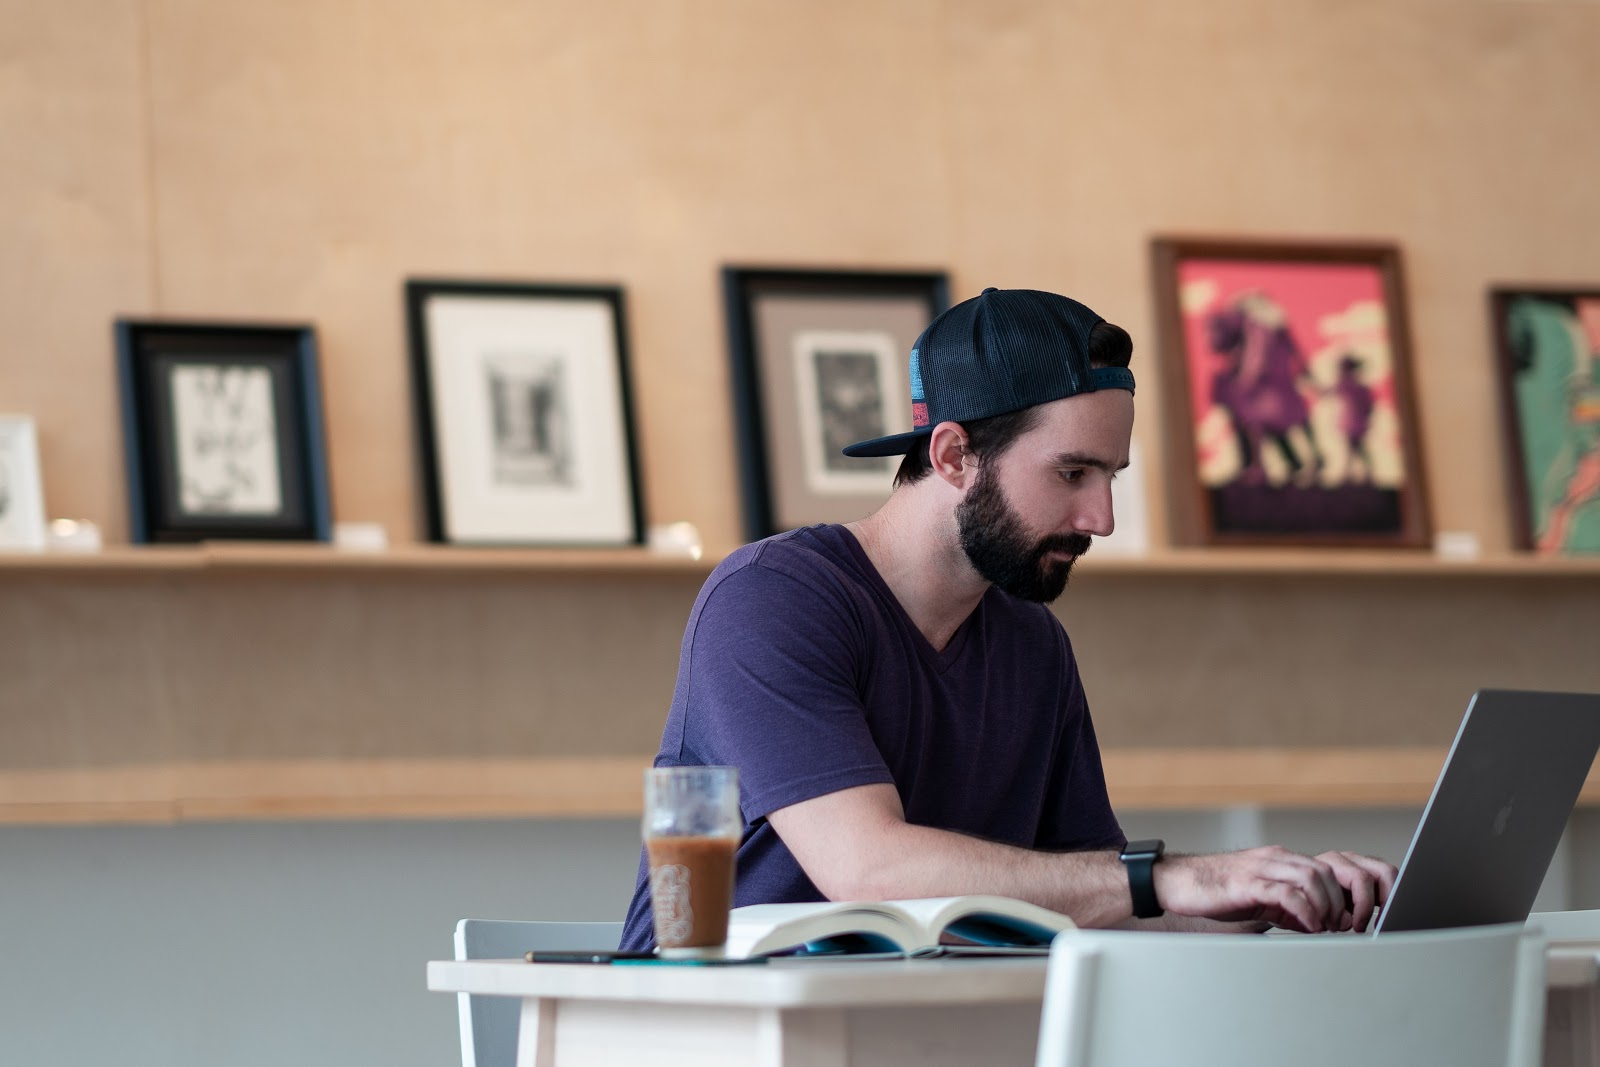 Man working on a laptop in a coffee shop